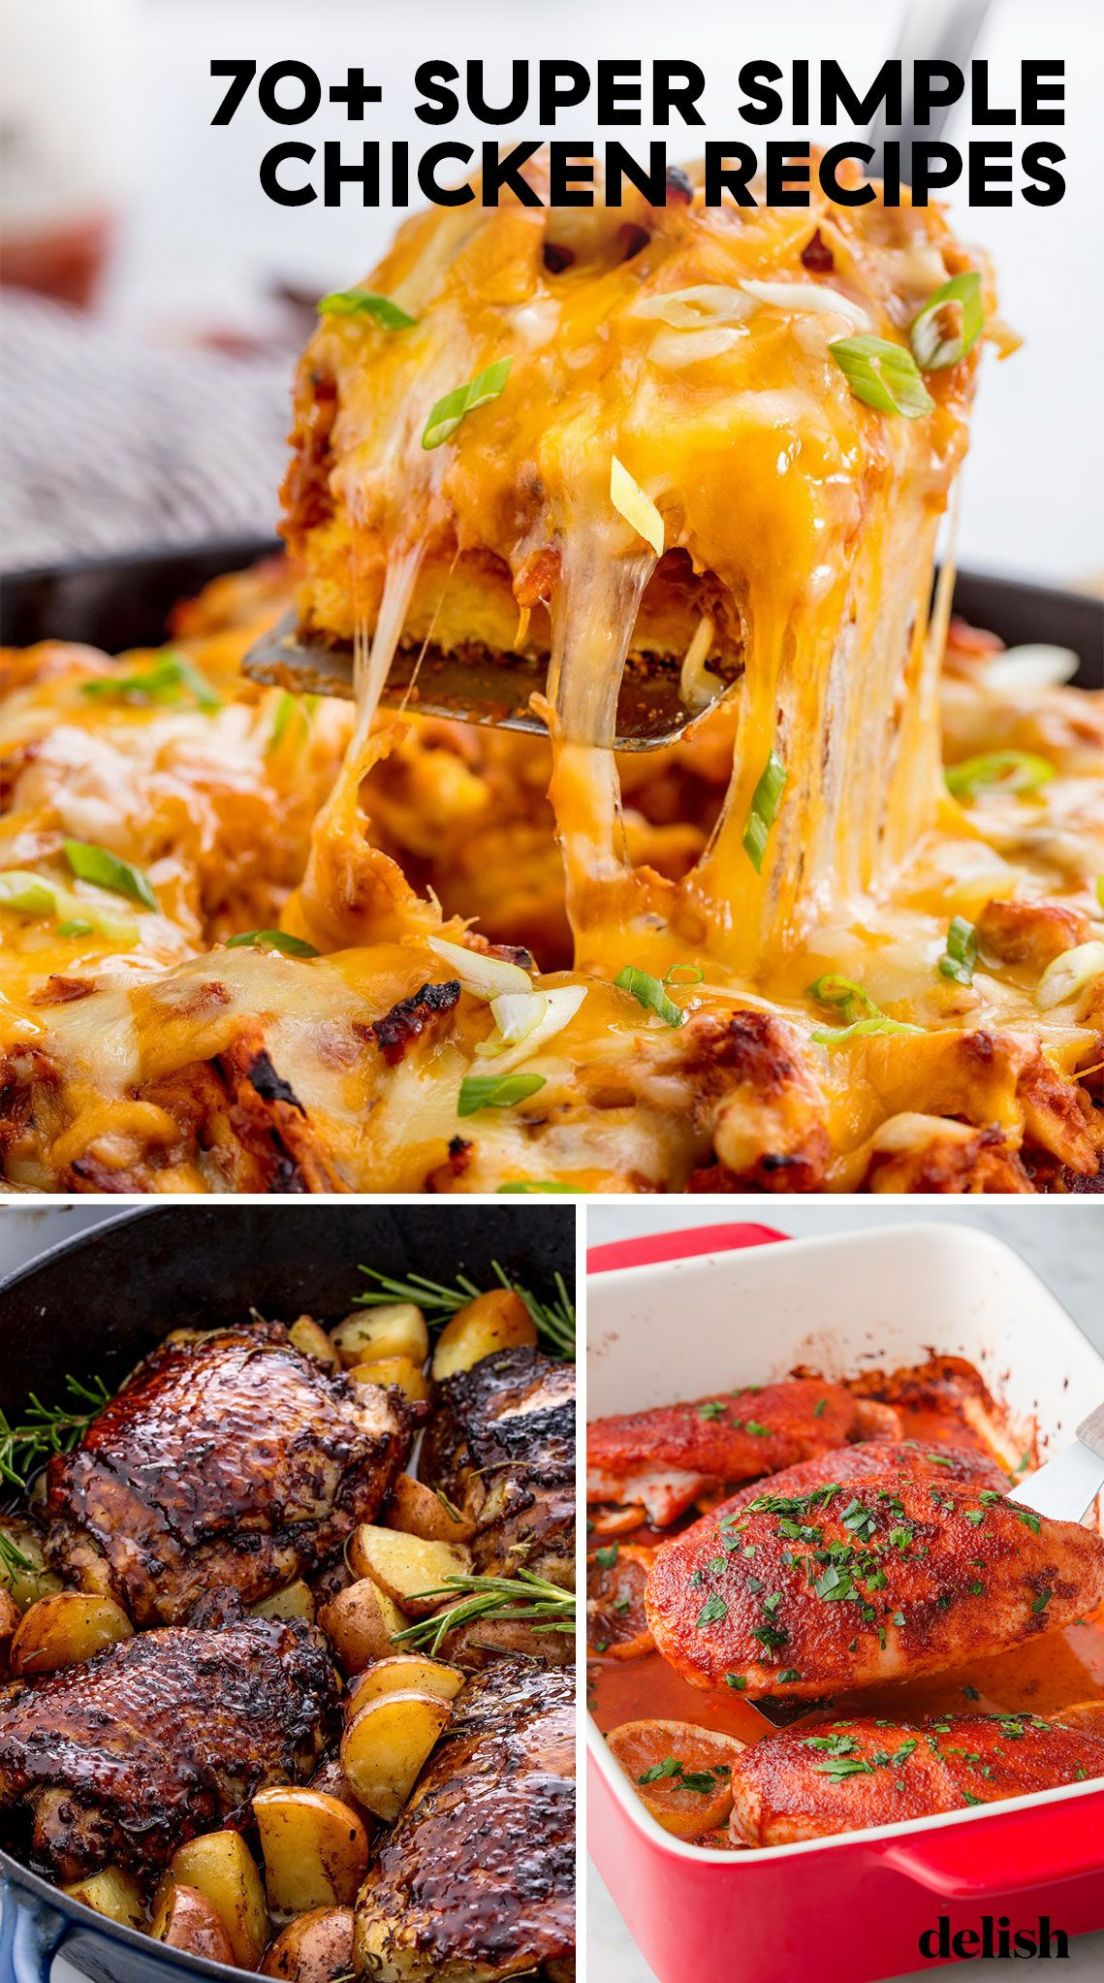 11+ Easy Chicken Dinner Recipes - Simple Ideas for Chicken Dishes